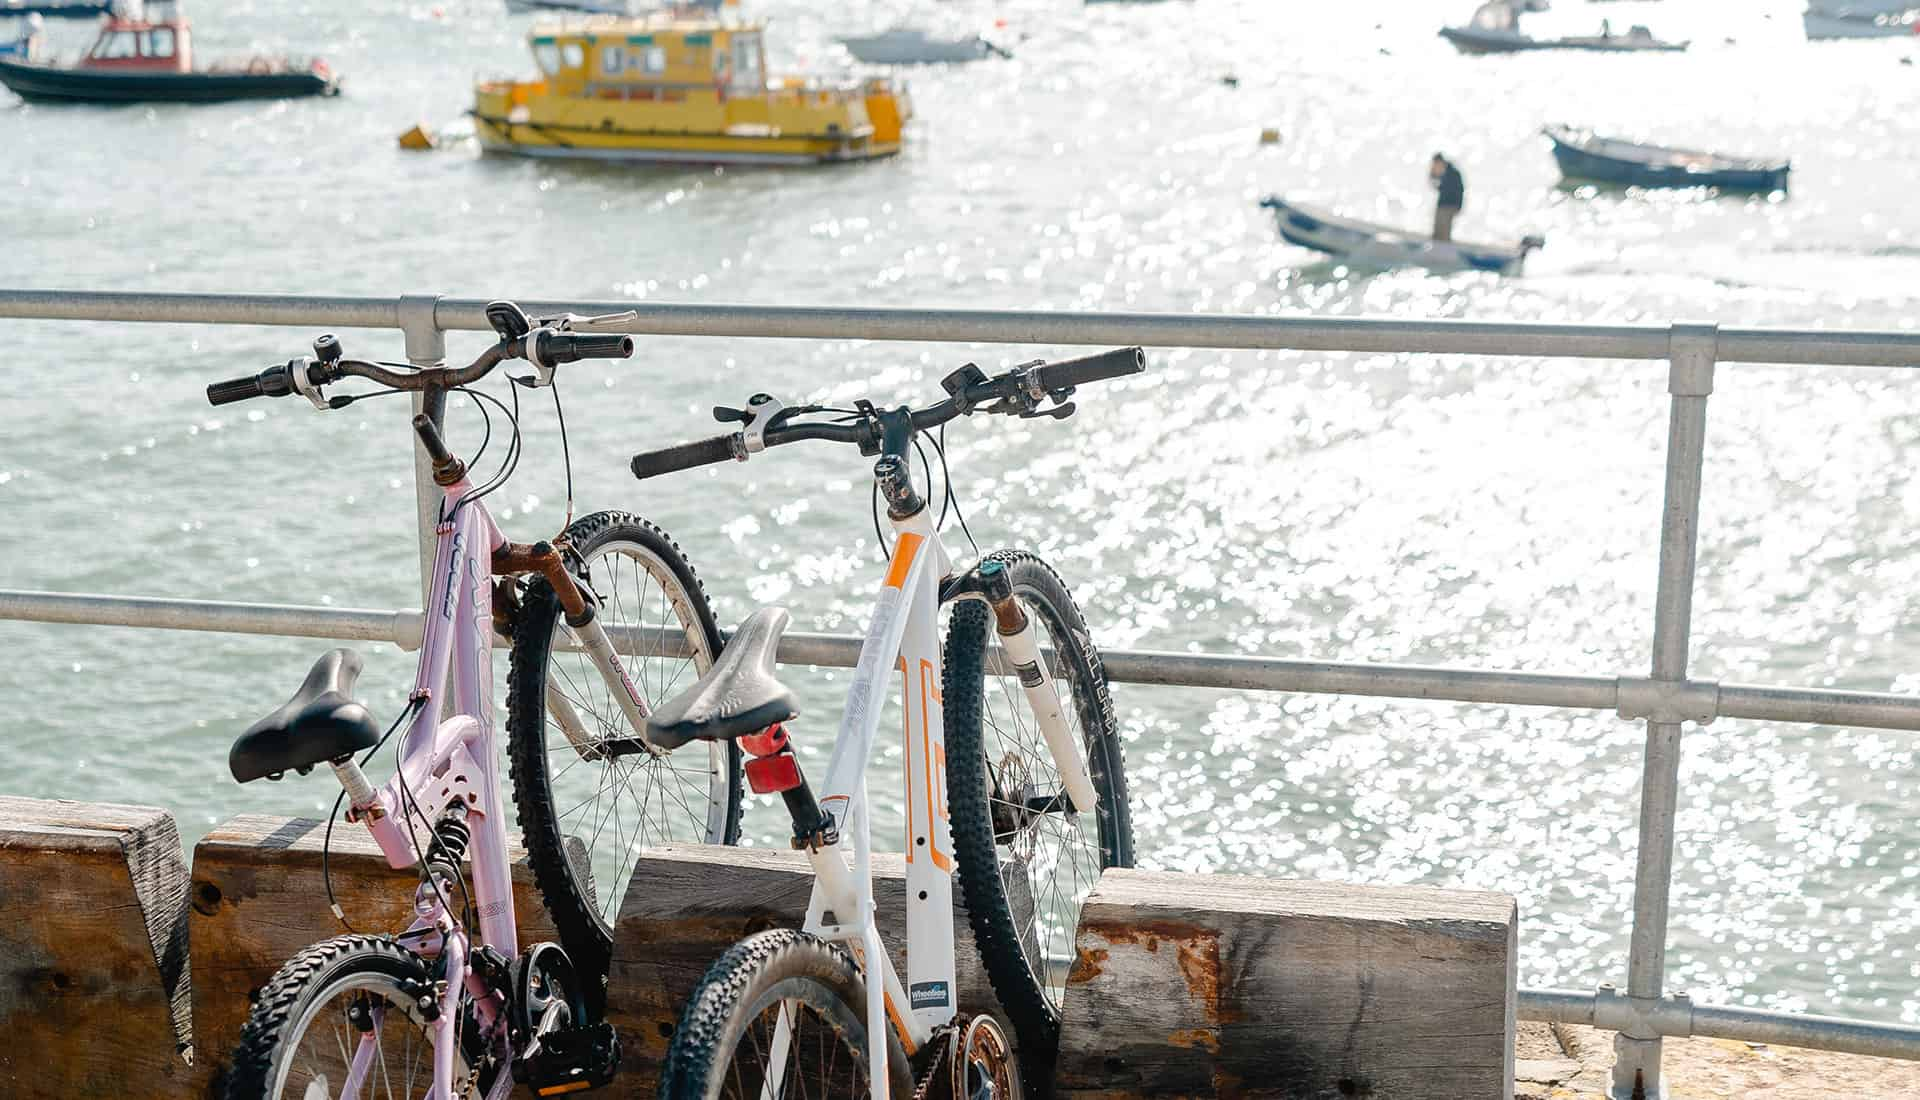 Bike Hire St Mary's - Day Trip Ideas to the Isles of Scilly